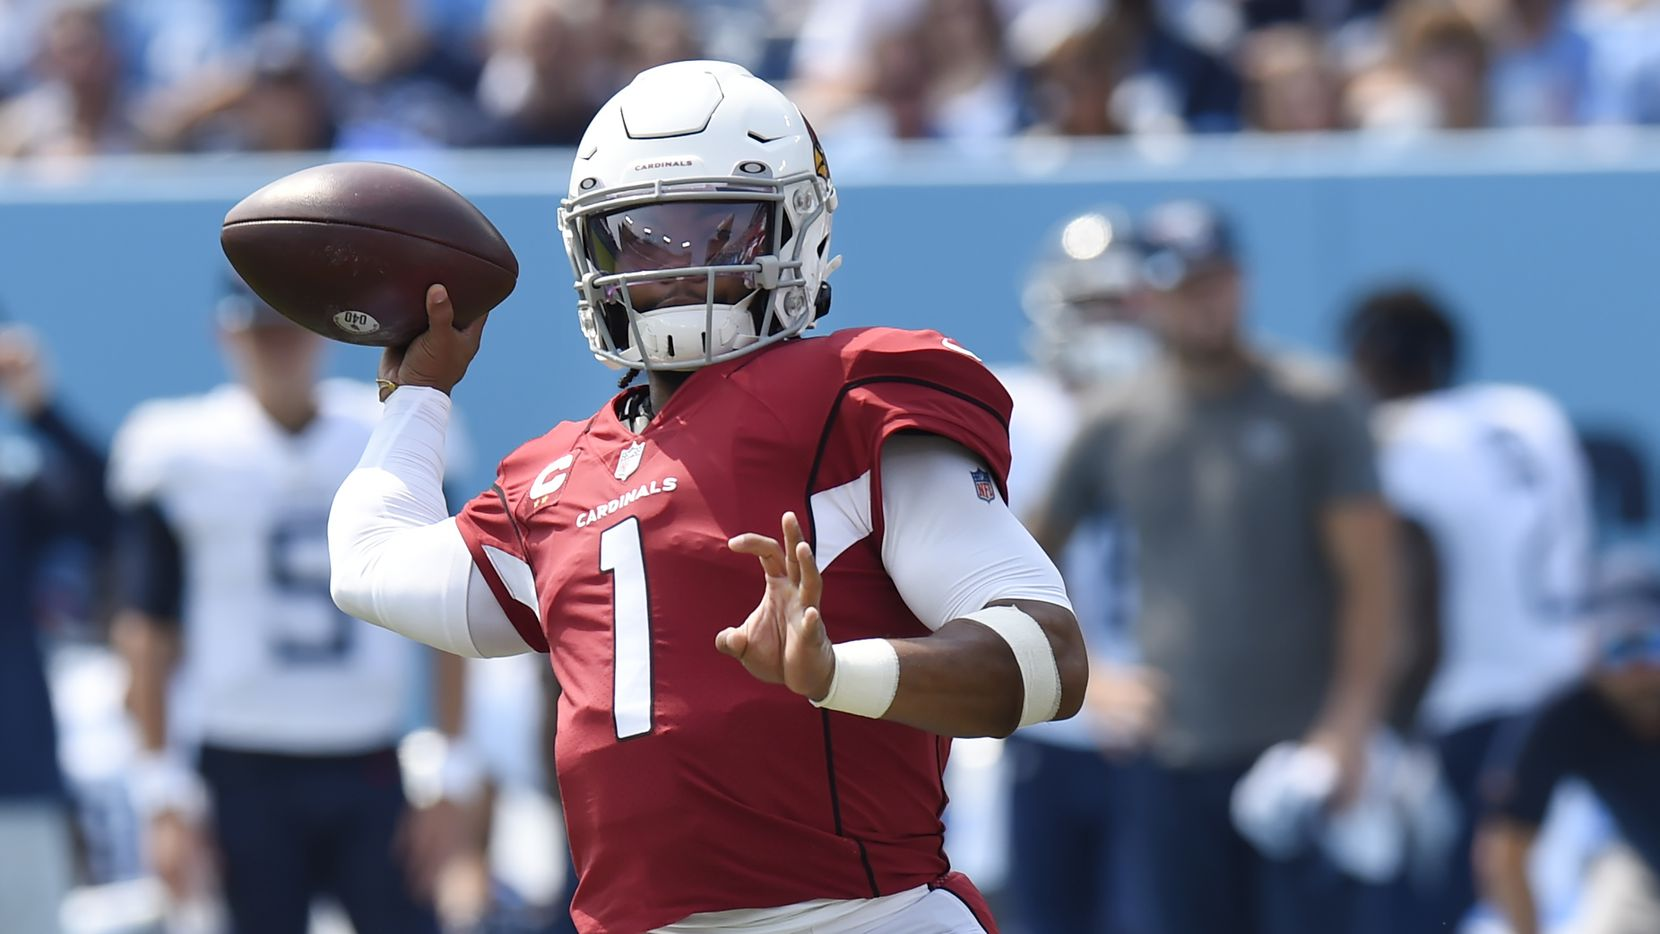 Arizona Cardinals quarterback Kyler Murray, who is from Allen, passes against the Tennessee Titans in the first half of an NFL football game Sunday, Sept. 12, 2021, in Nashville, Tenn.